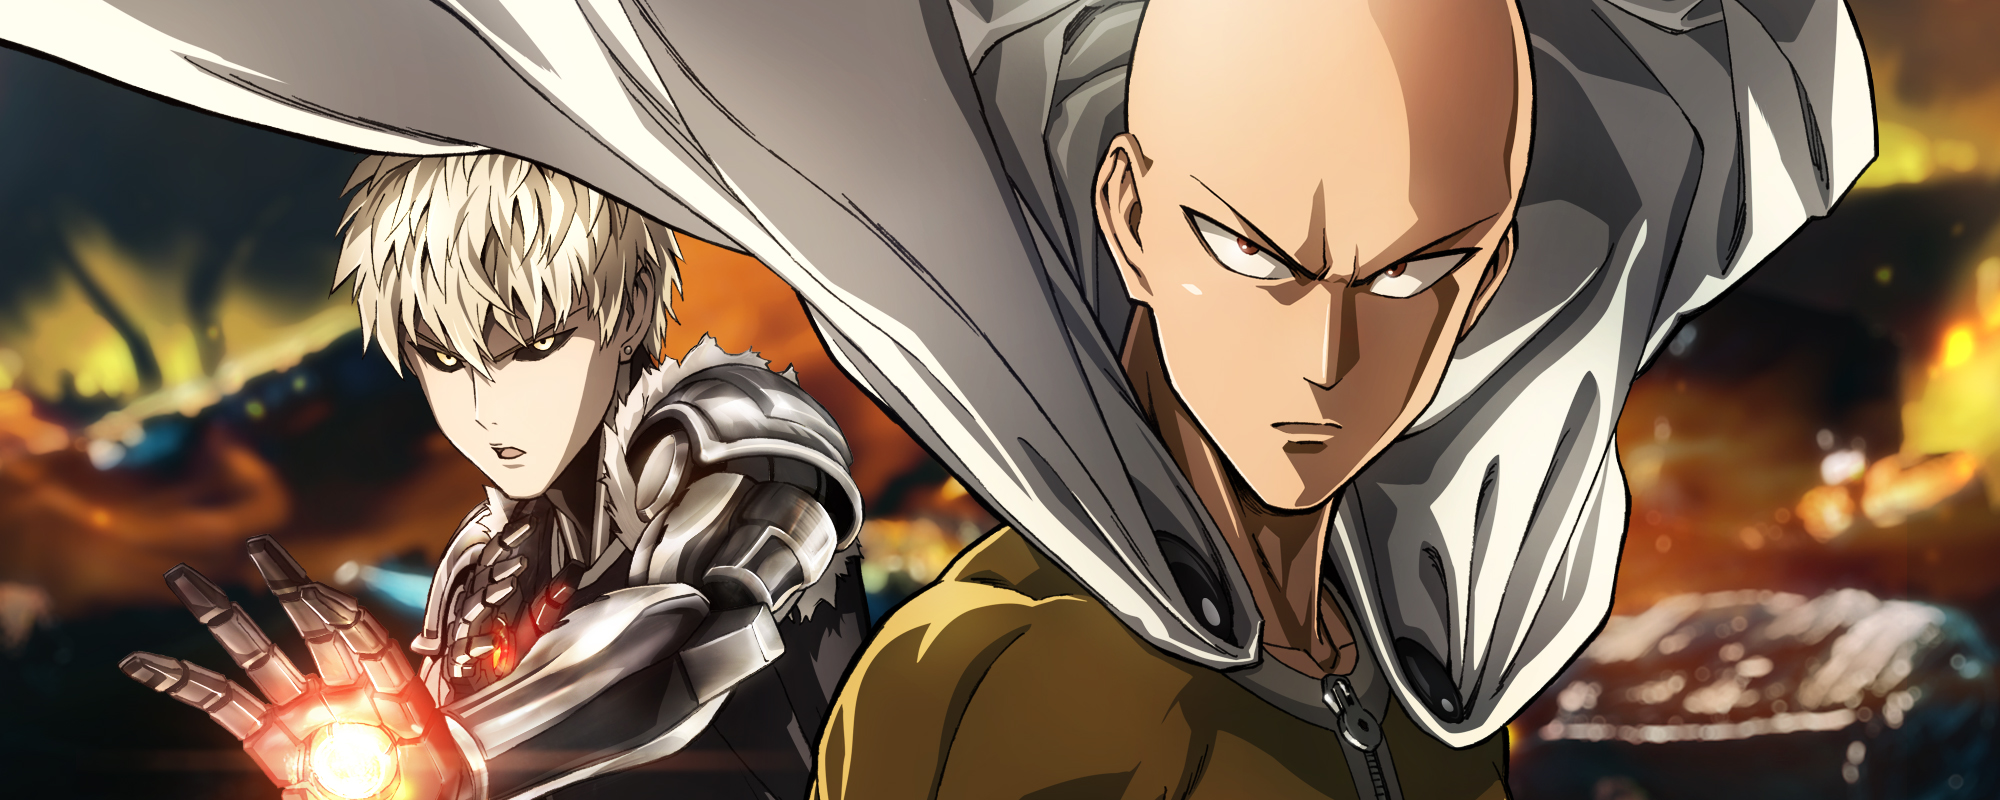 One Punch Man Season 3 Release Date Details